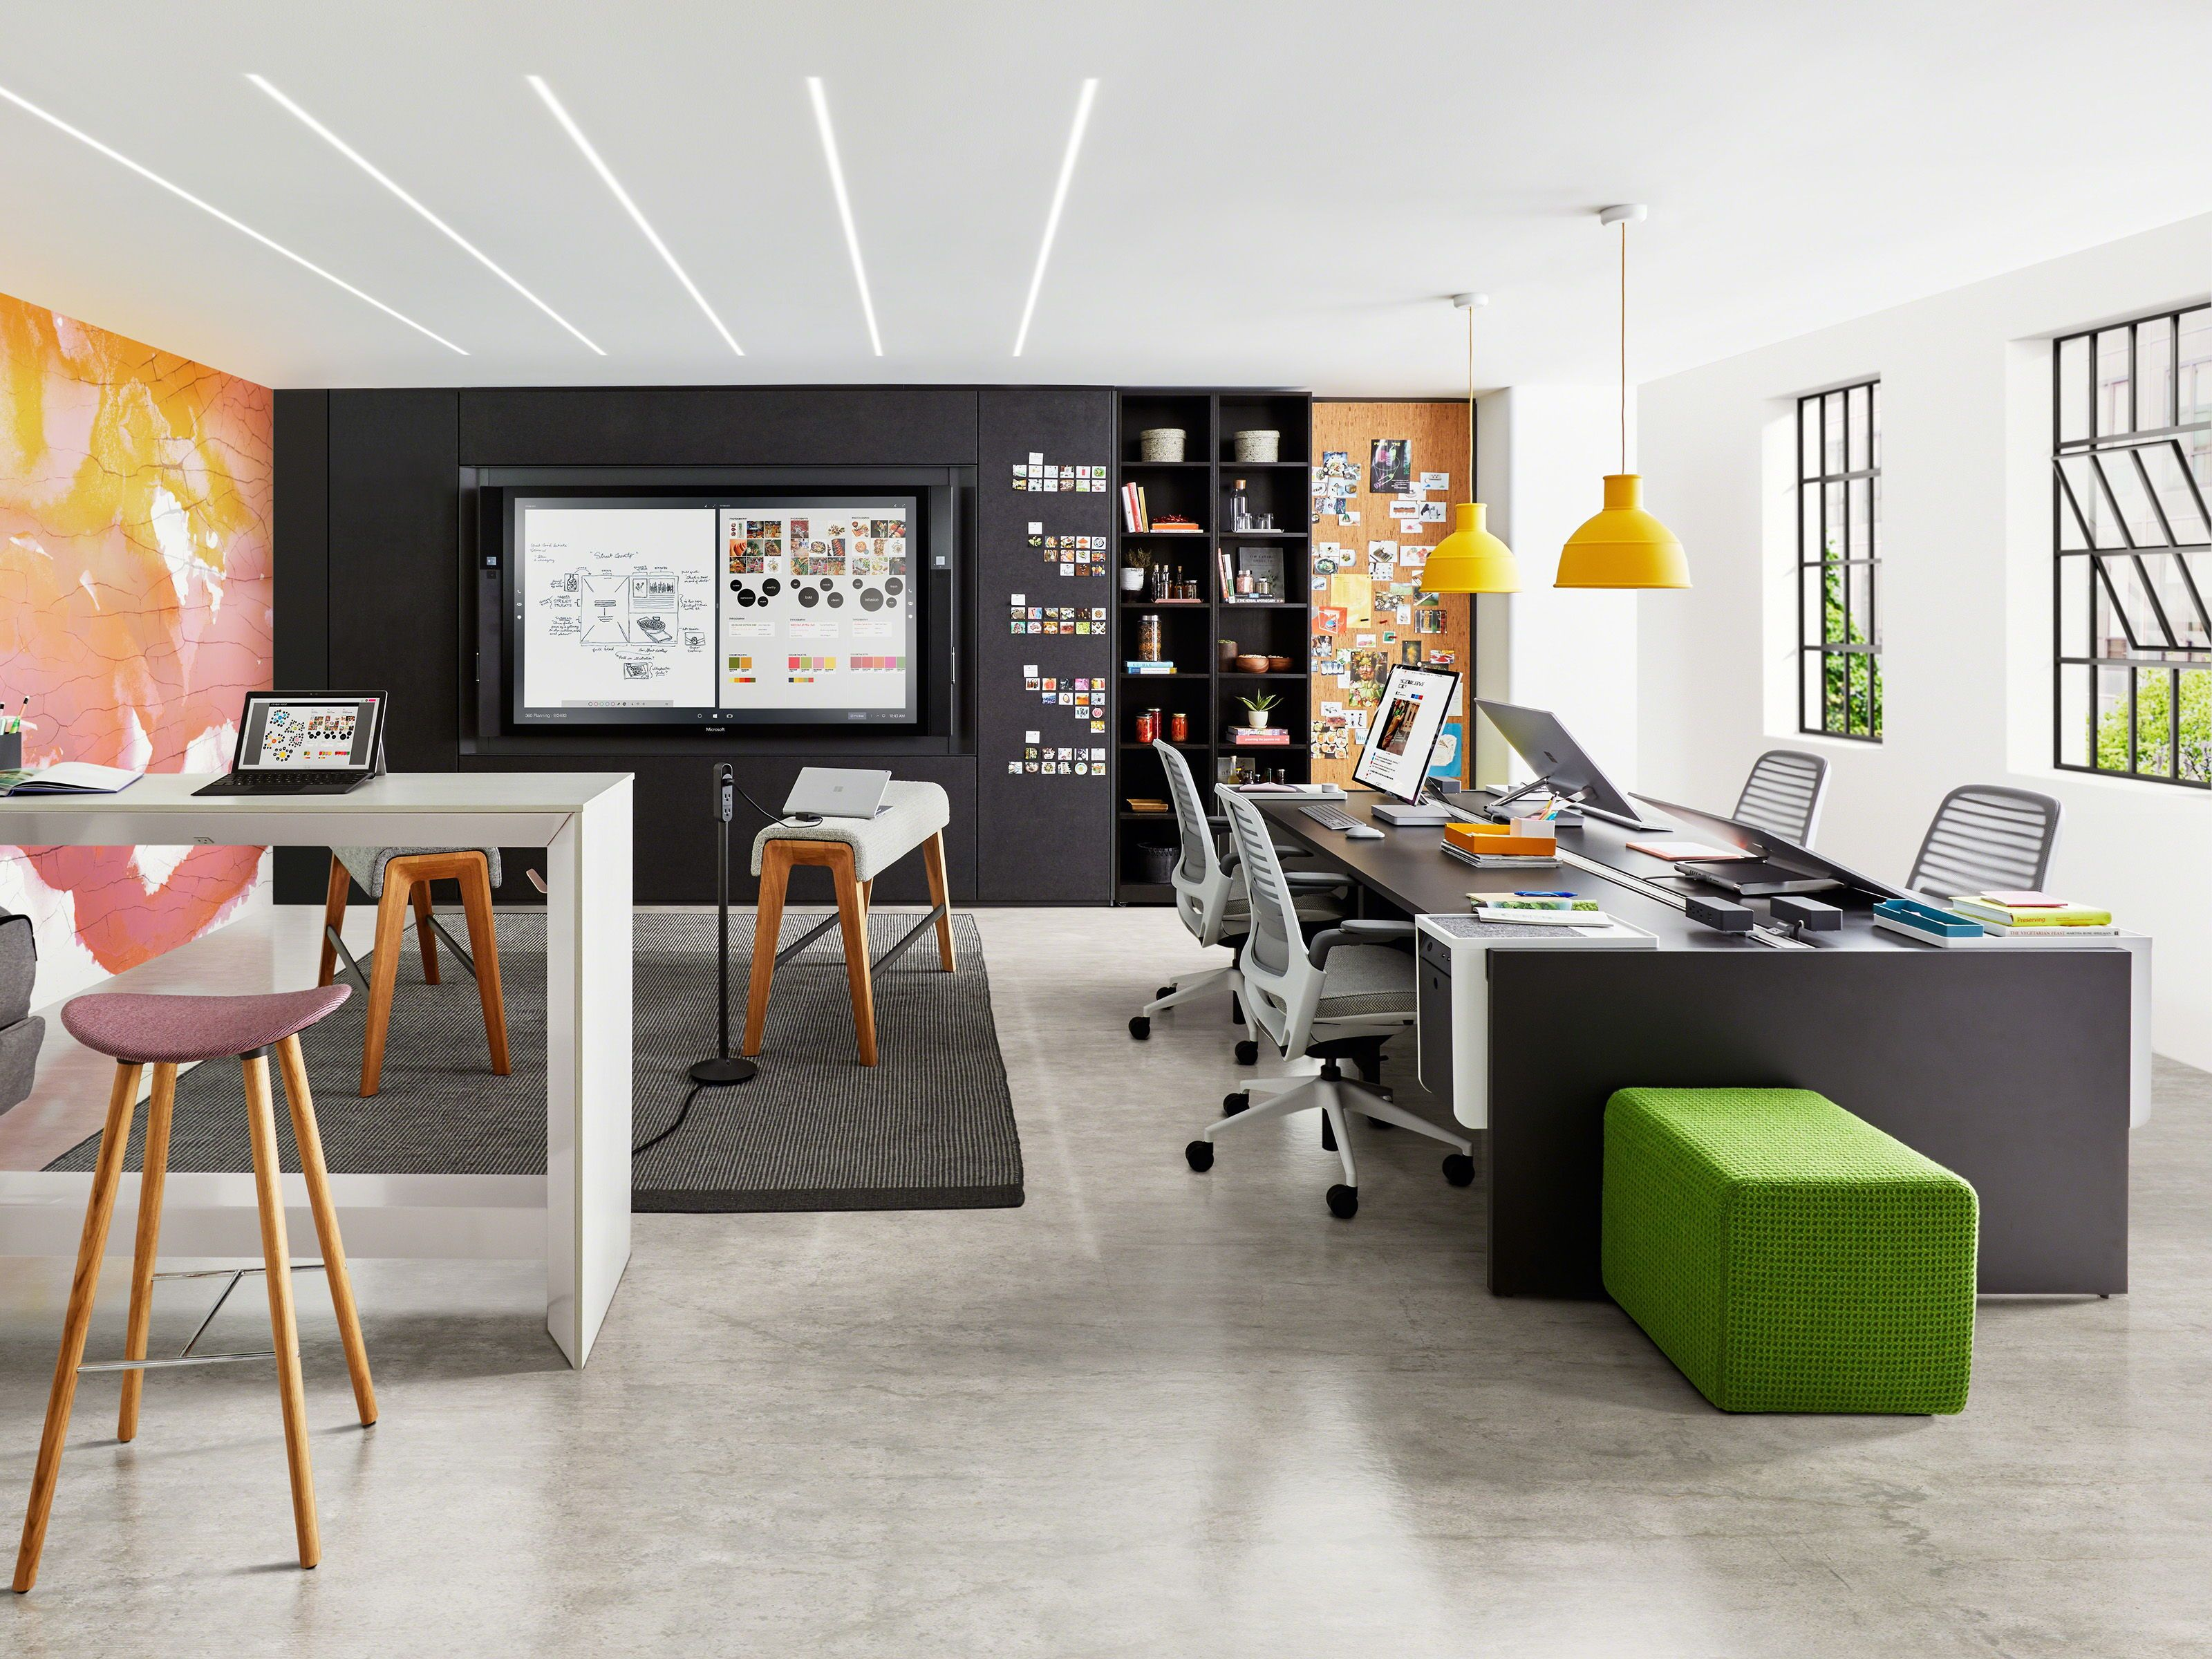 Our Staff Of Professional Workspace Planners Have The Imagination